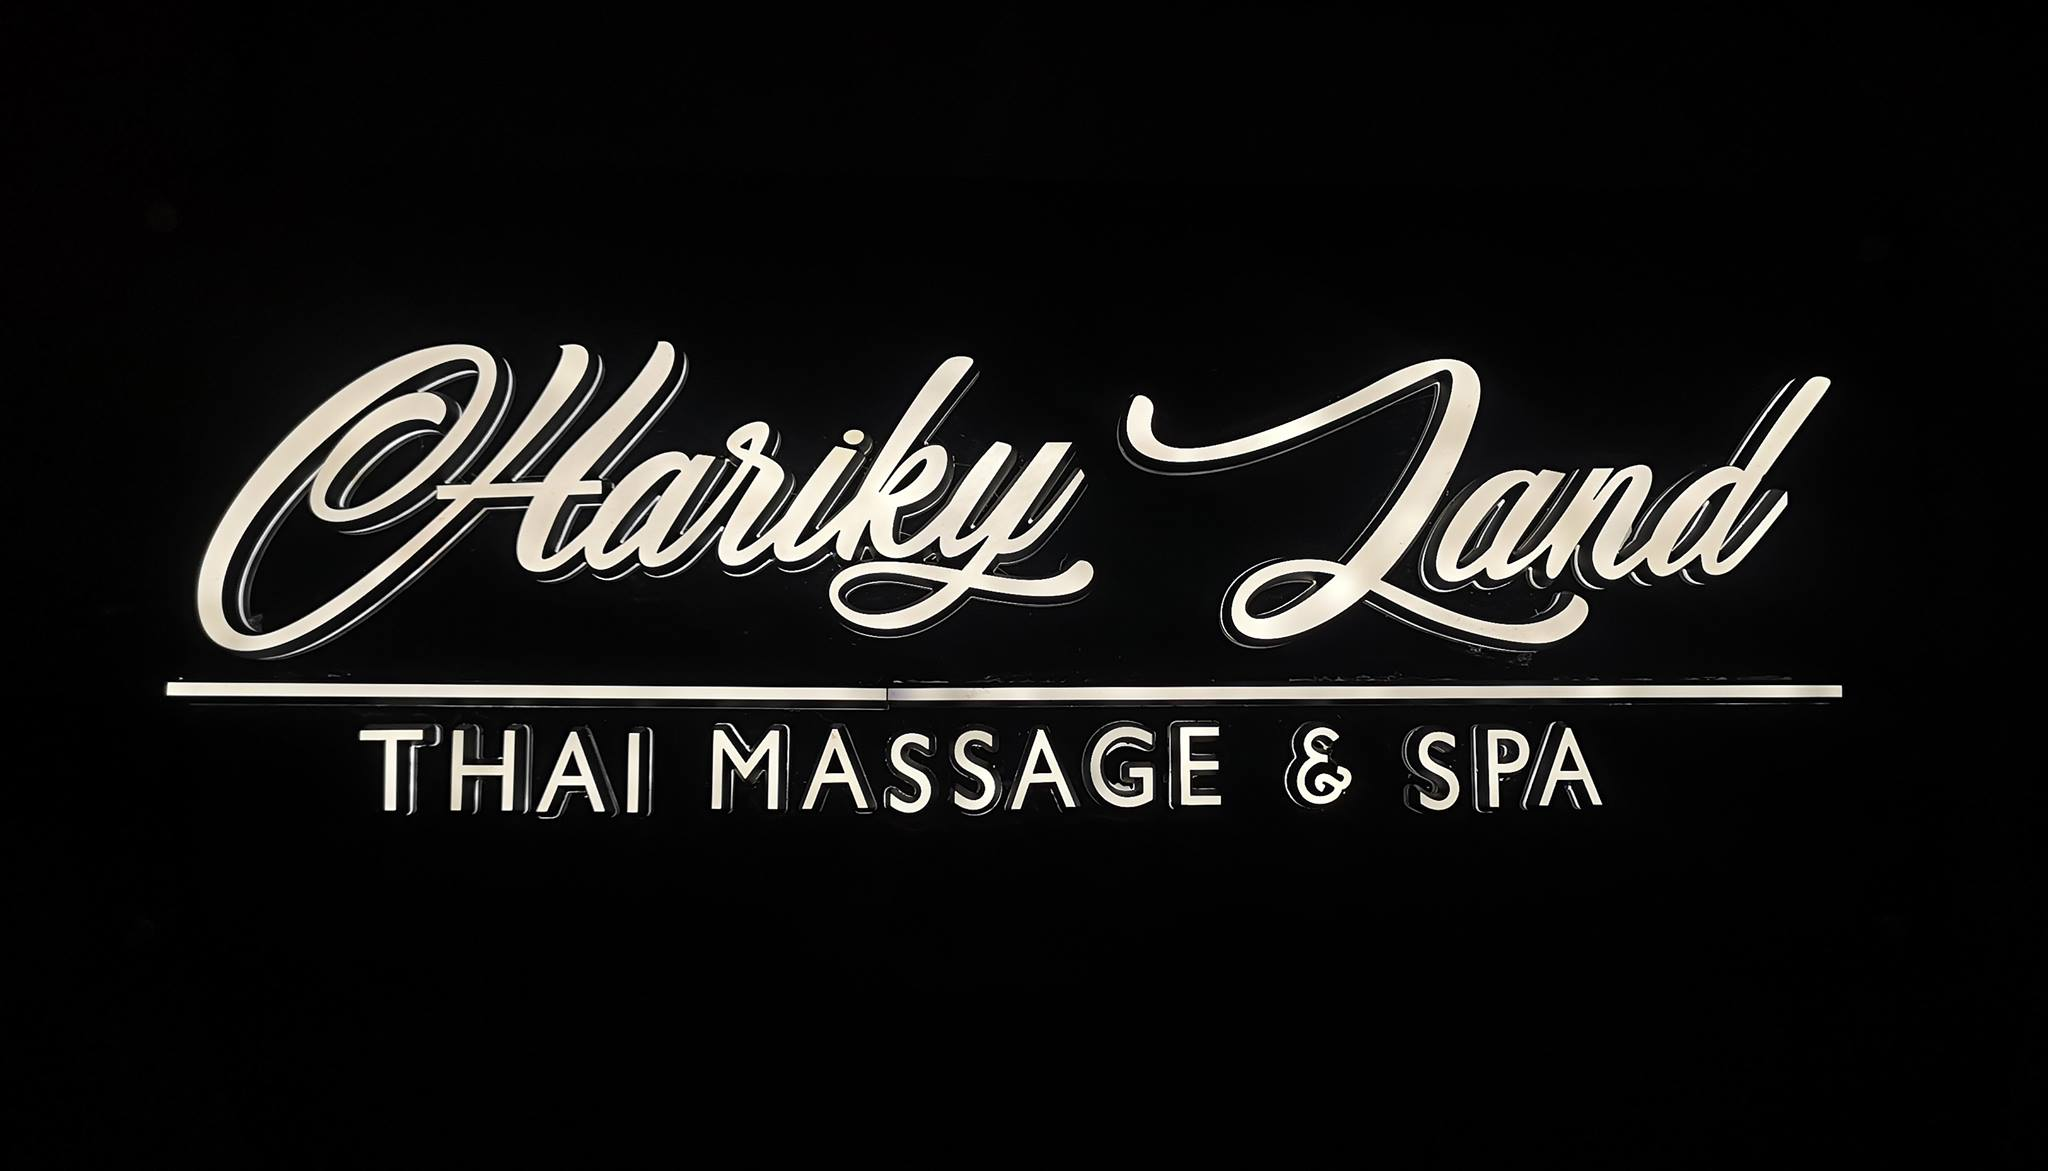 : Hariky Land THAI Massage & SPA 慢活谷古法泰式按摩